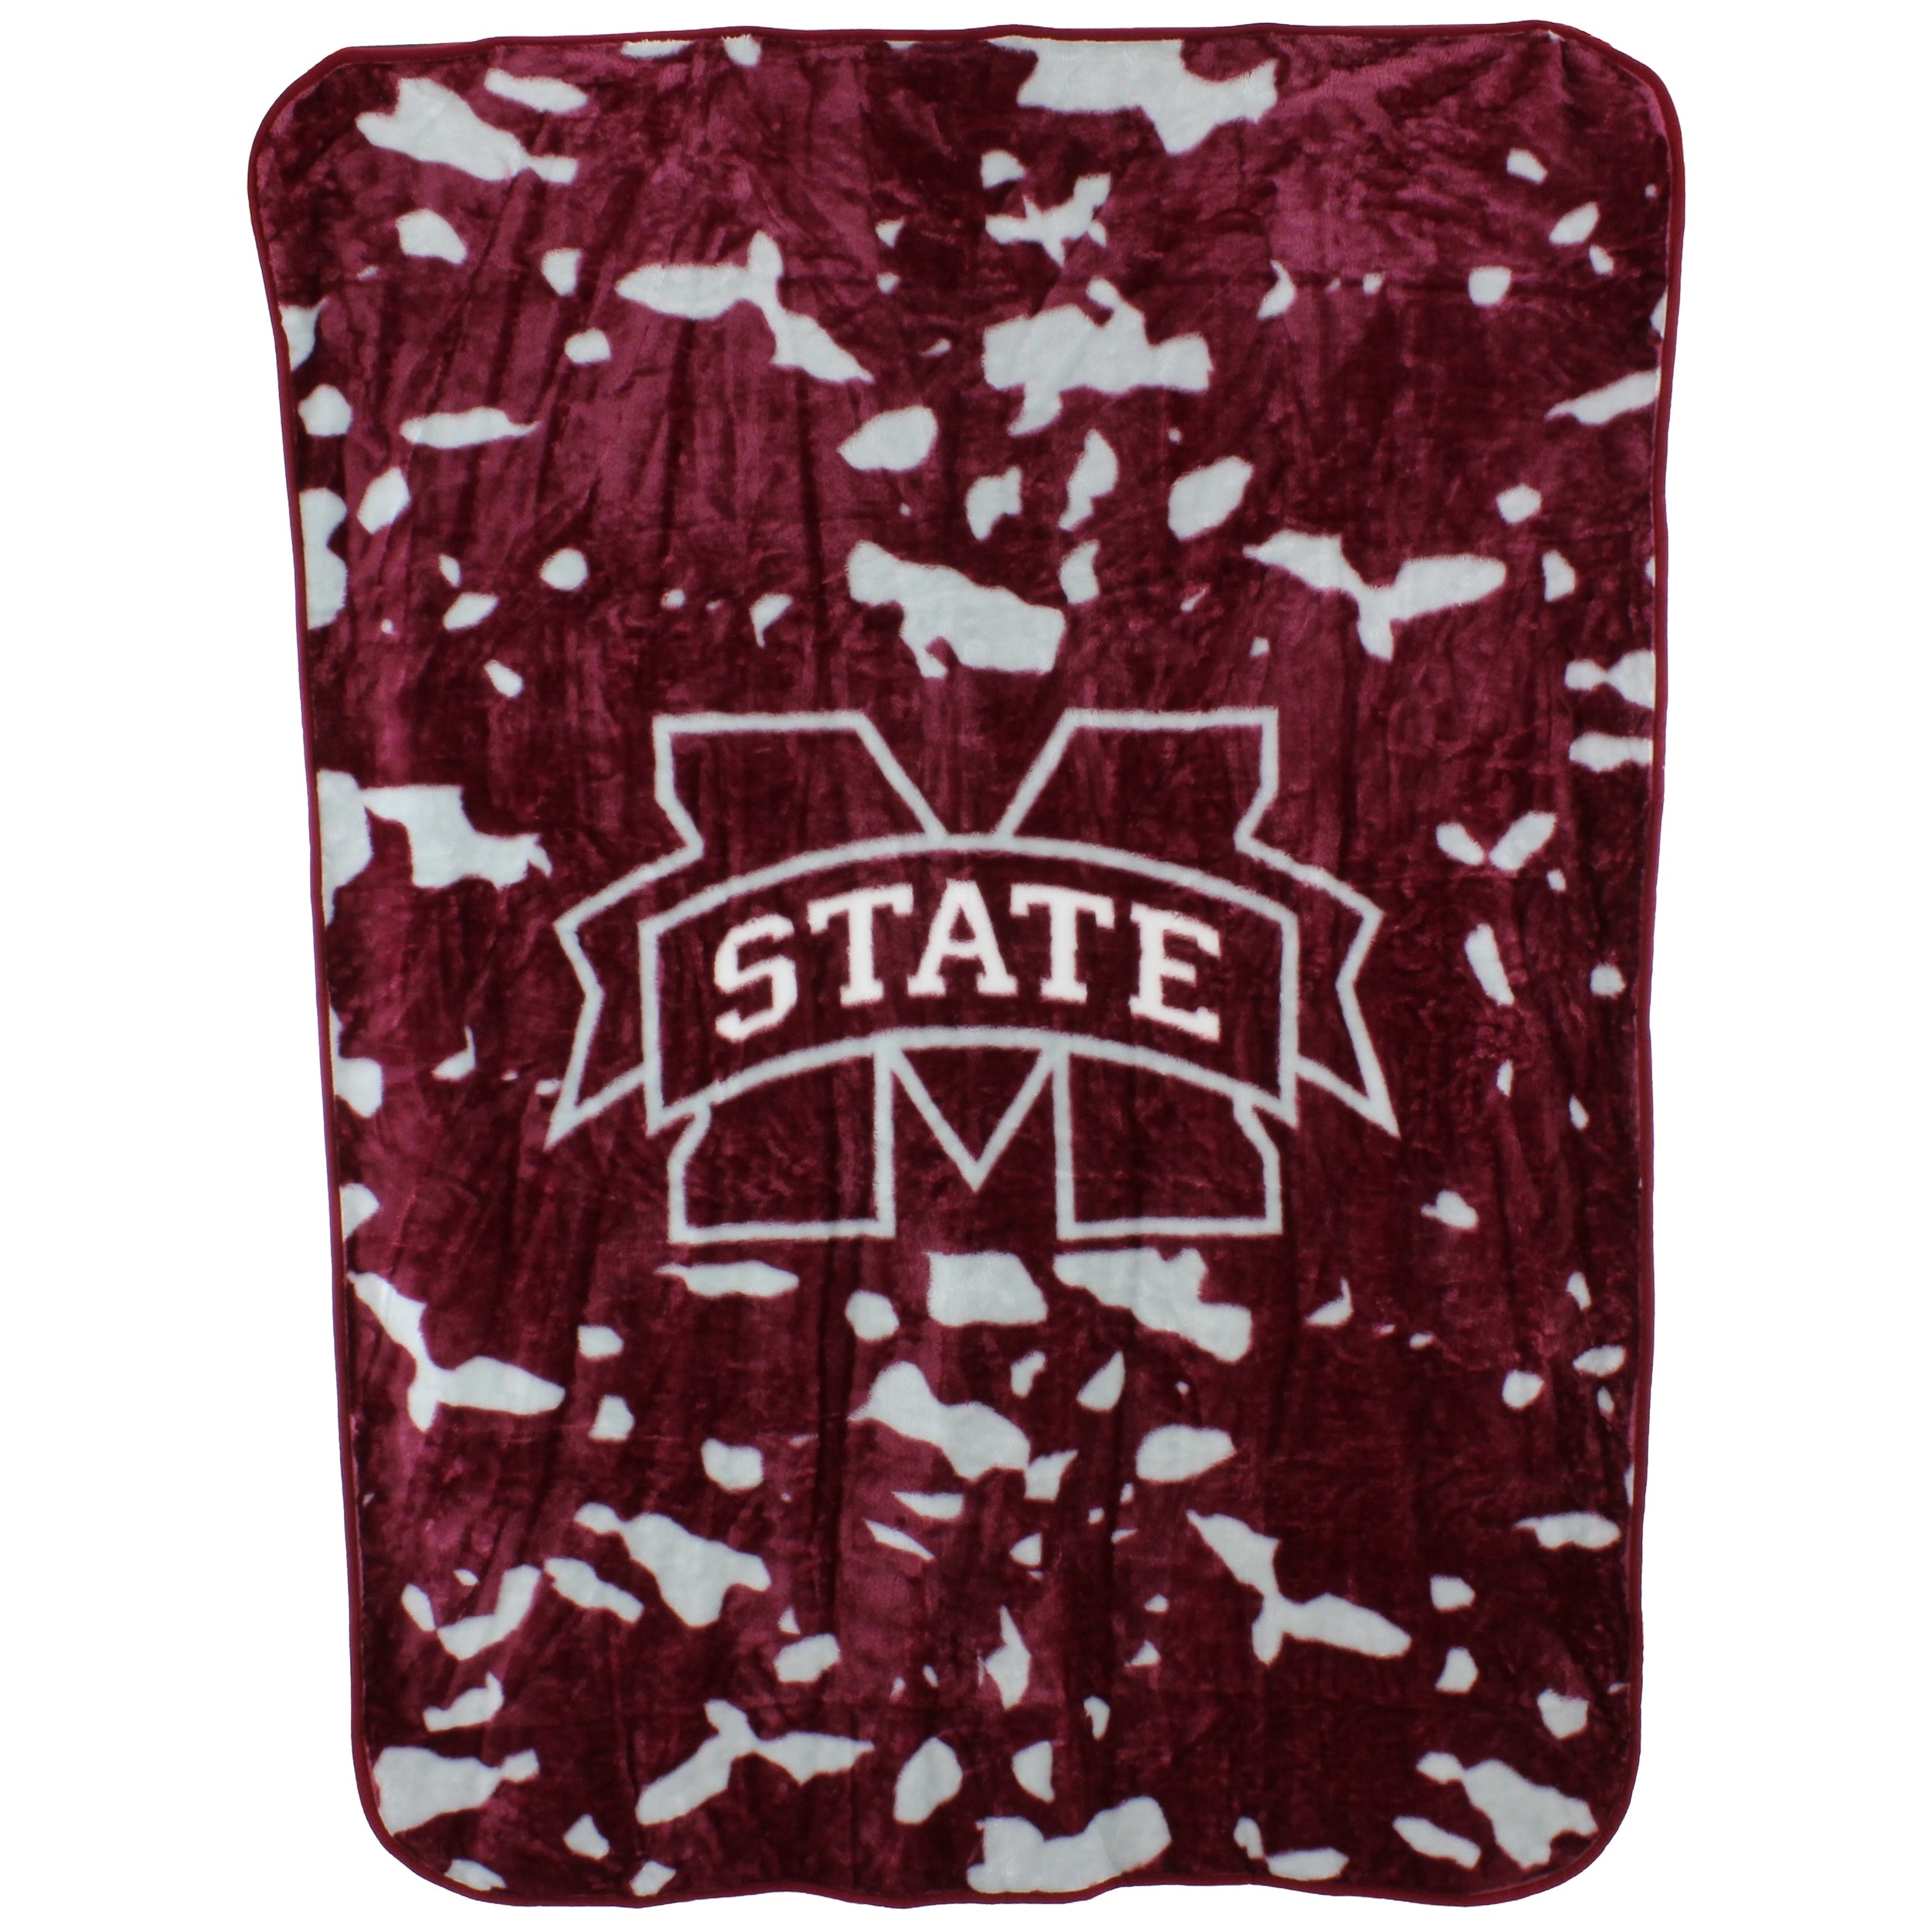 """College Covers Fan Shop Throws Mississippi State Bulldogs 63"""" x 86"""" Soft Raschel Throw Blanket"""